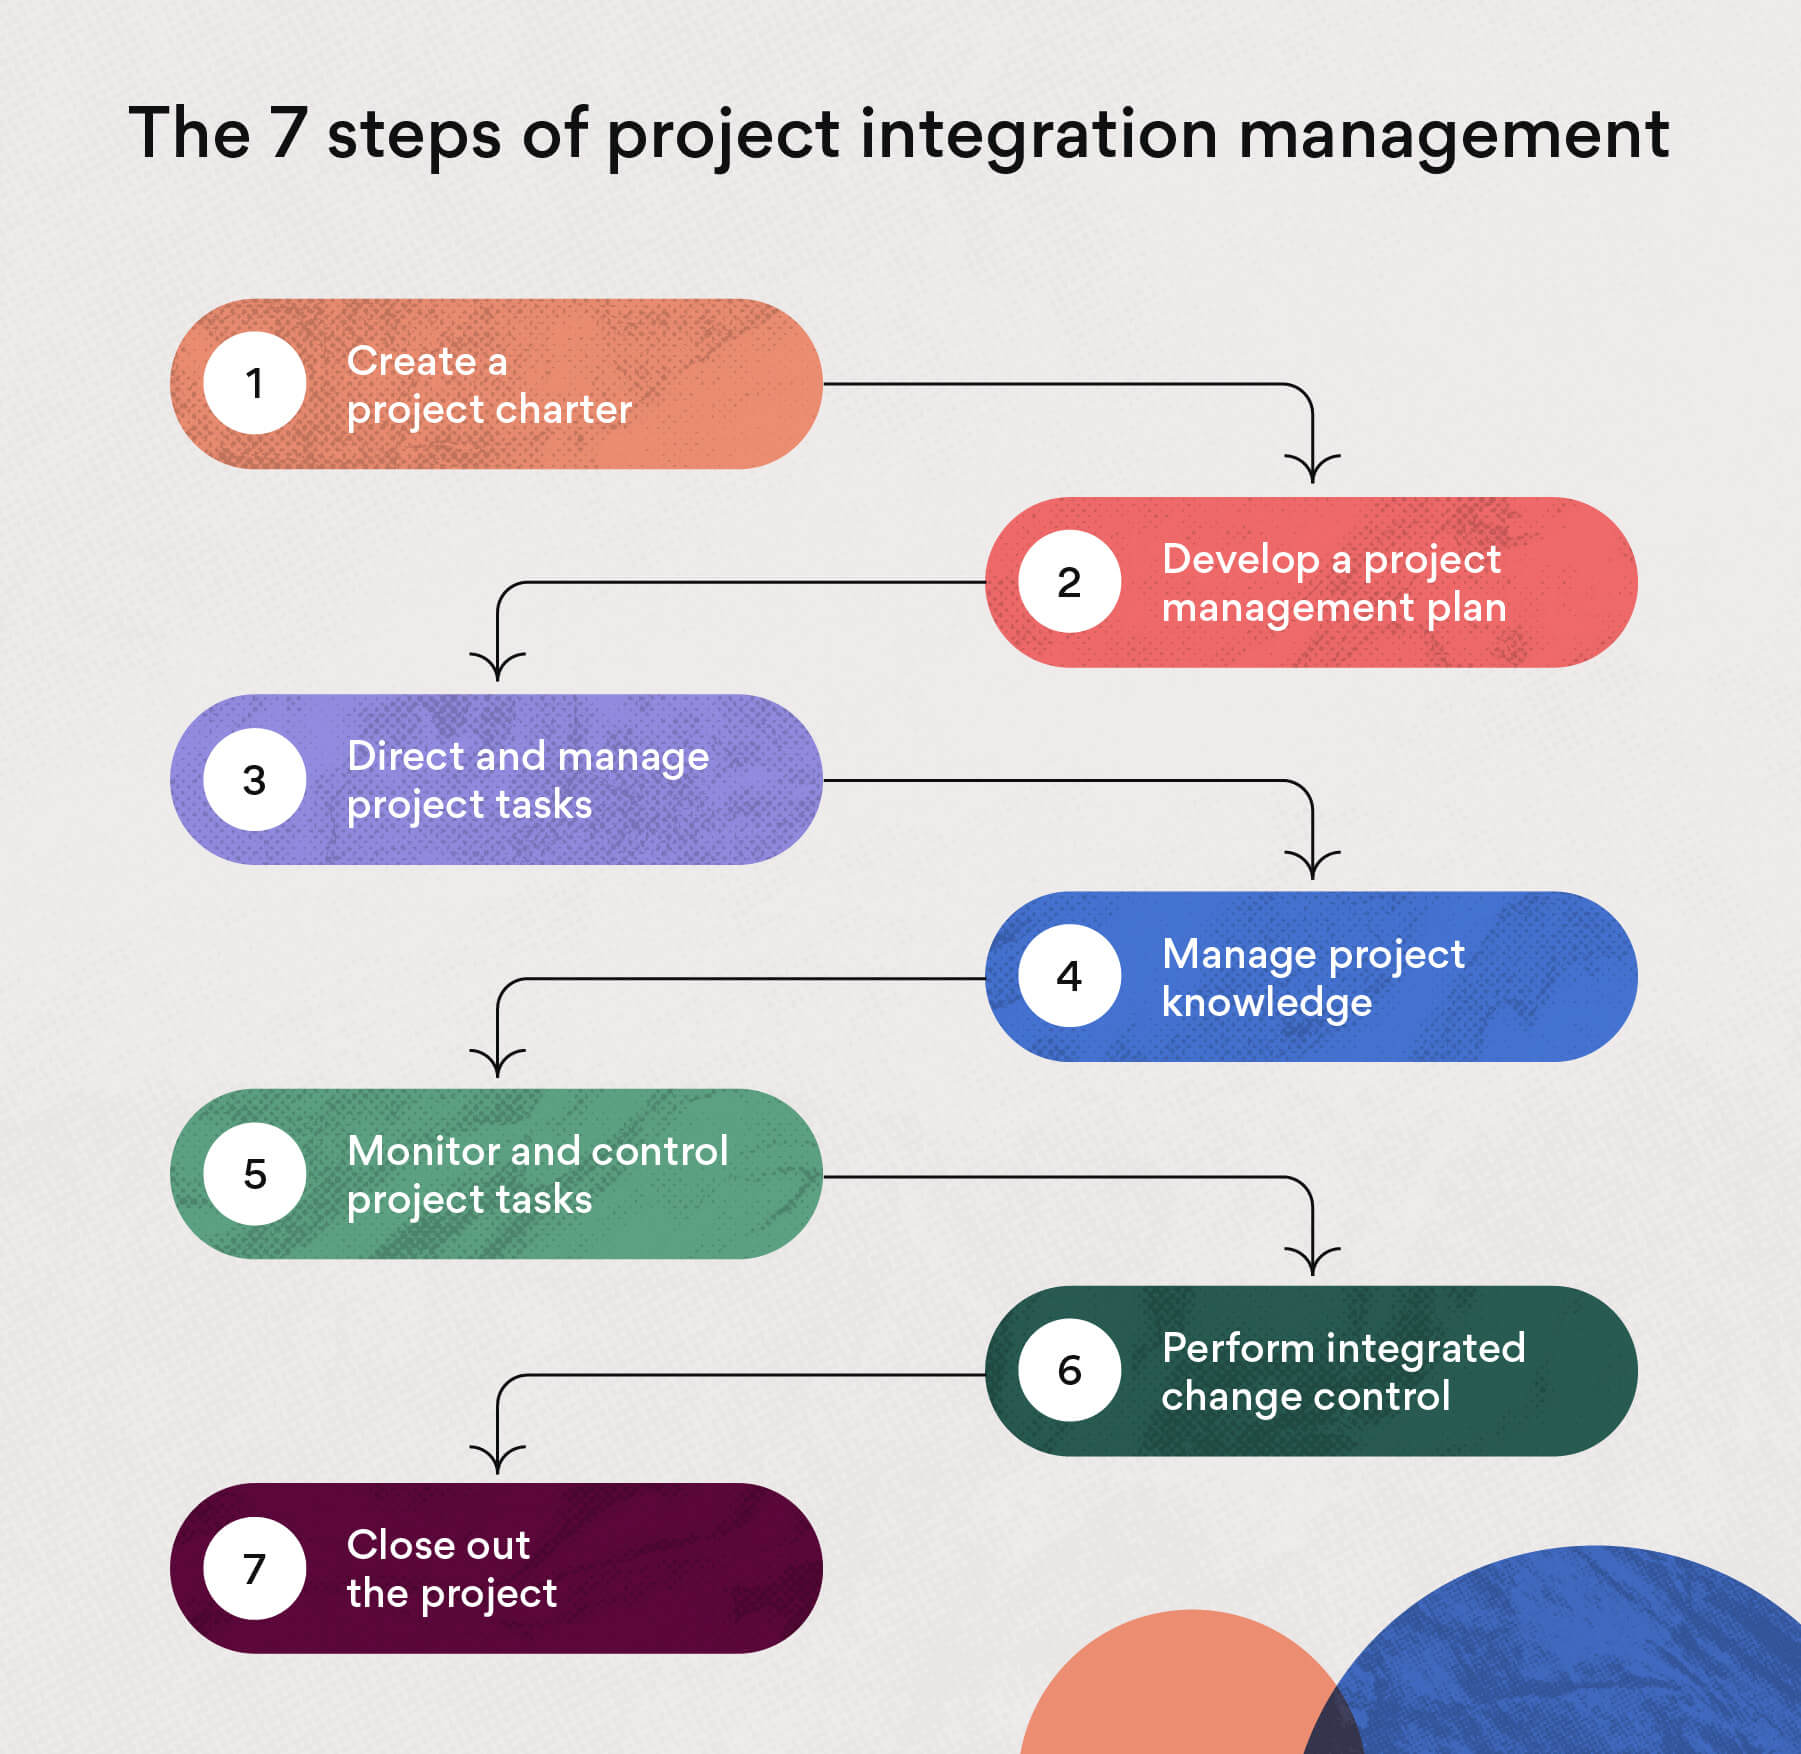 The 7 steps of project integration management